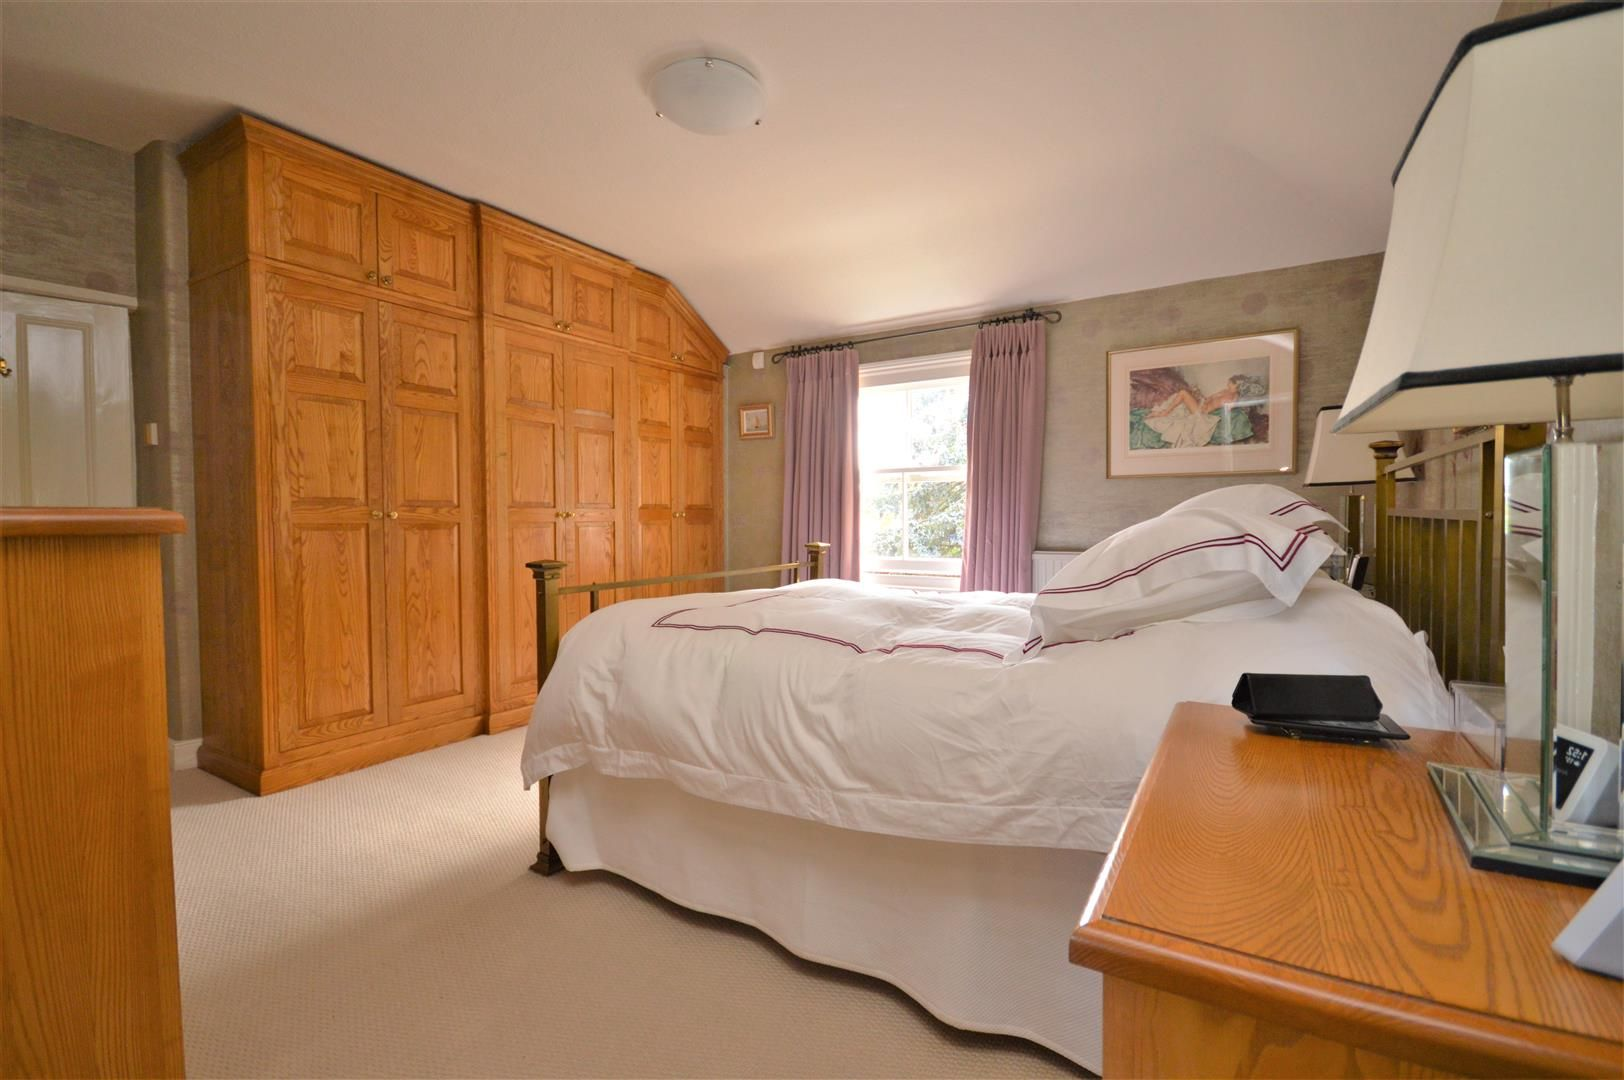 5 bed detached for sale in Stretton Sugwas  - Property Image 20